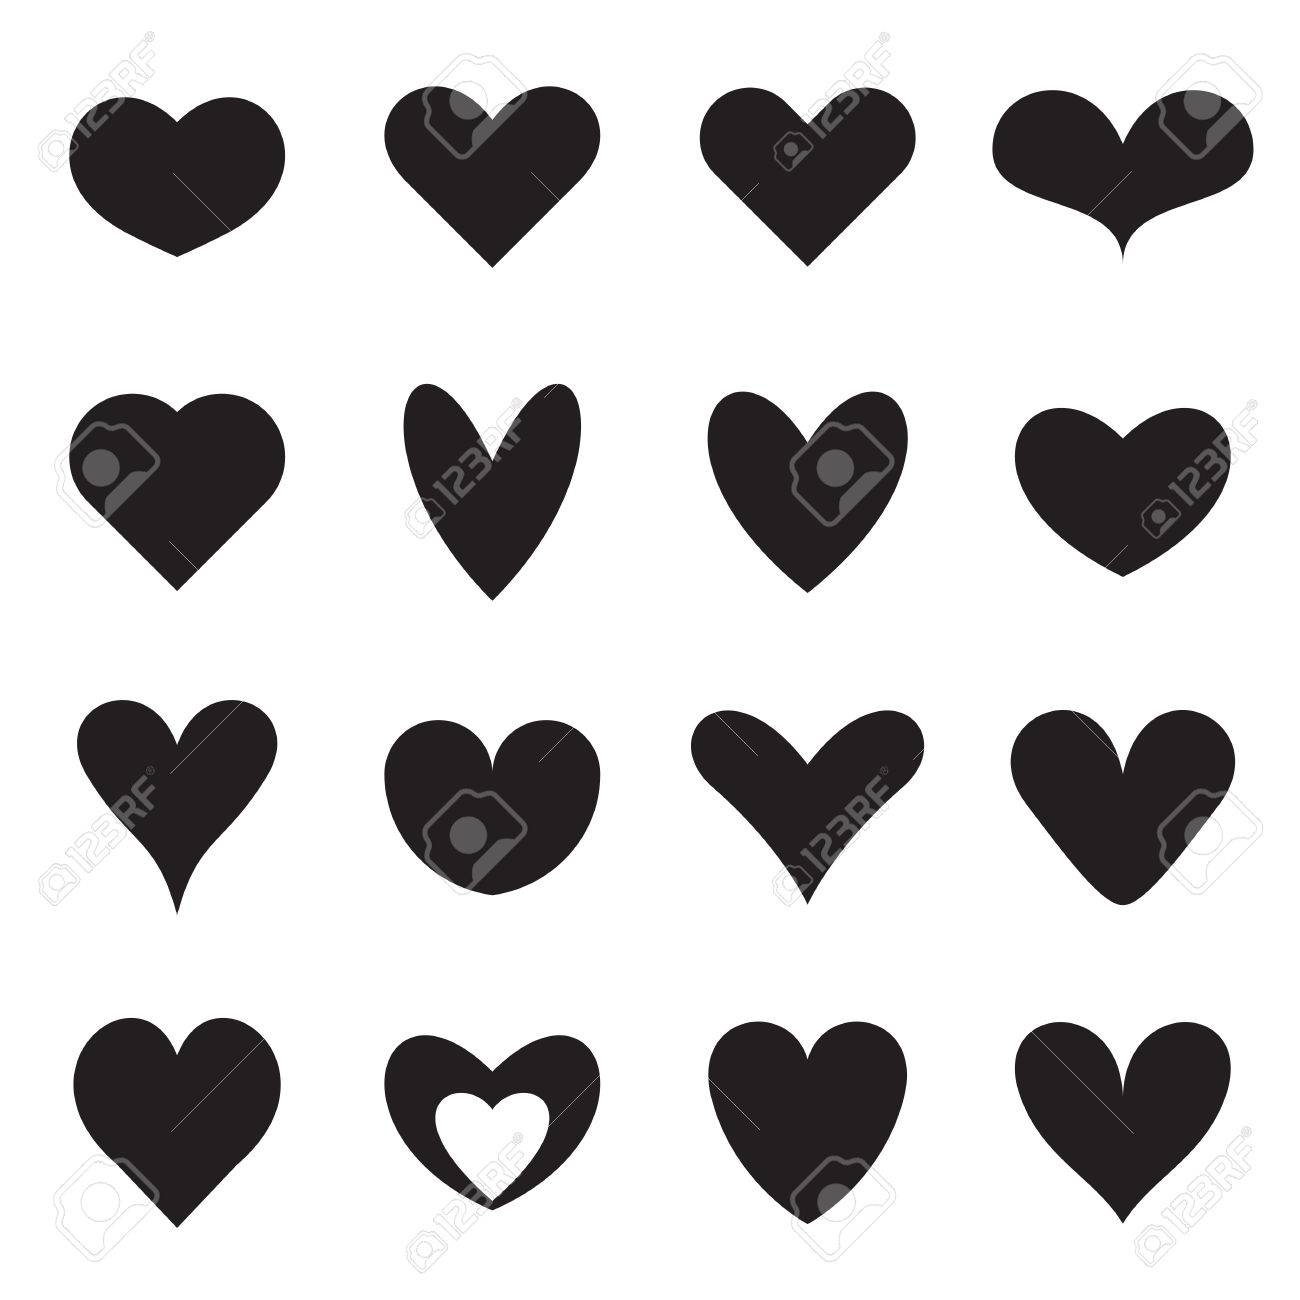 Heart symbol shapes set of sixteen different symmetrical templates heart symbol shapes set of sixteen different symmetrical templates of heart symbols for icons buycottarizona Images